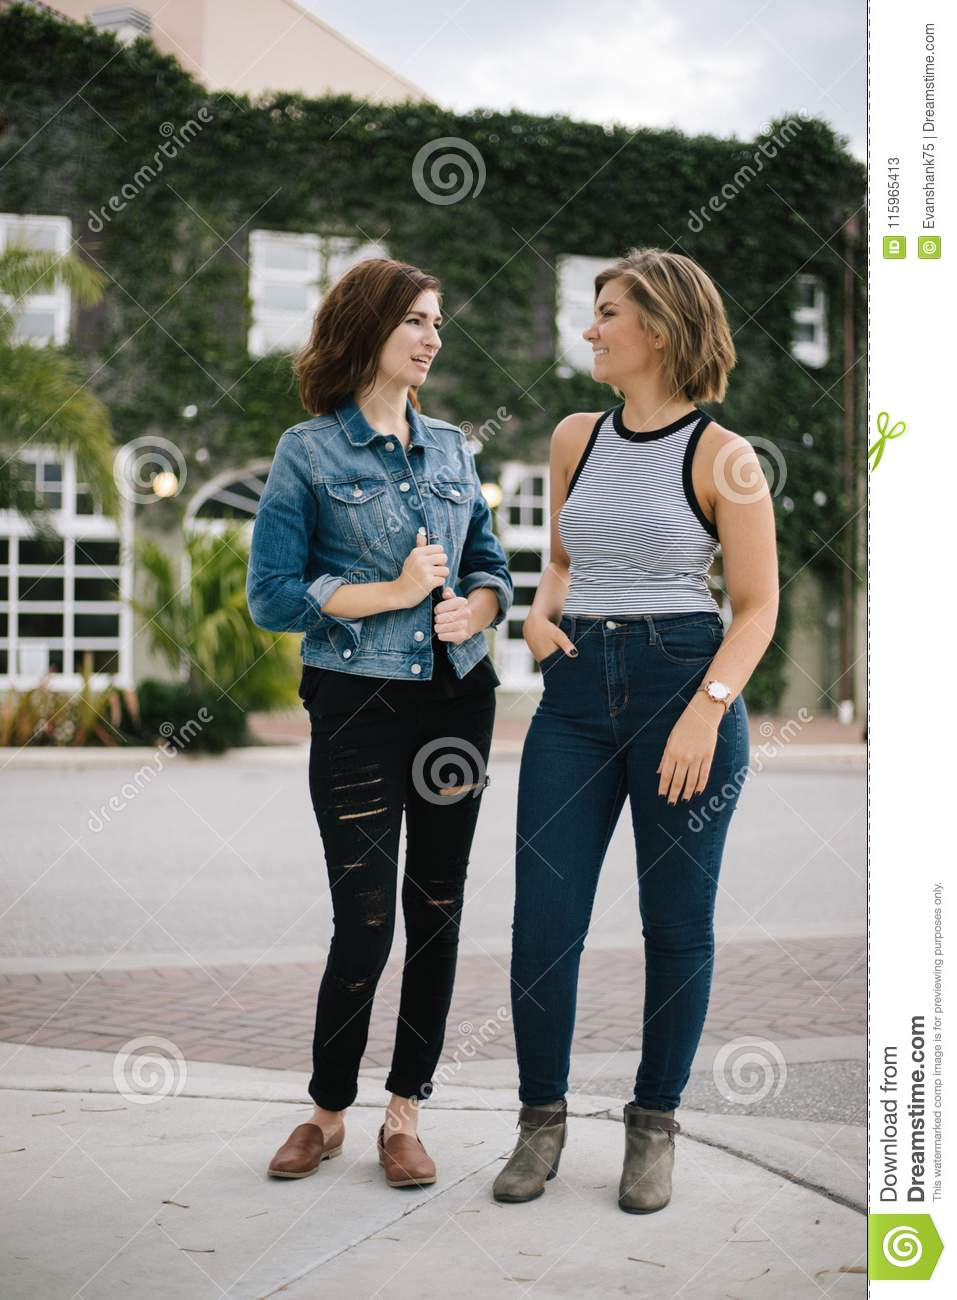 Attractive Young Female Best Friends Modeling and Having Fun in Front of Overgrown Urban Building